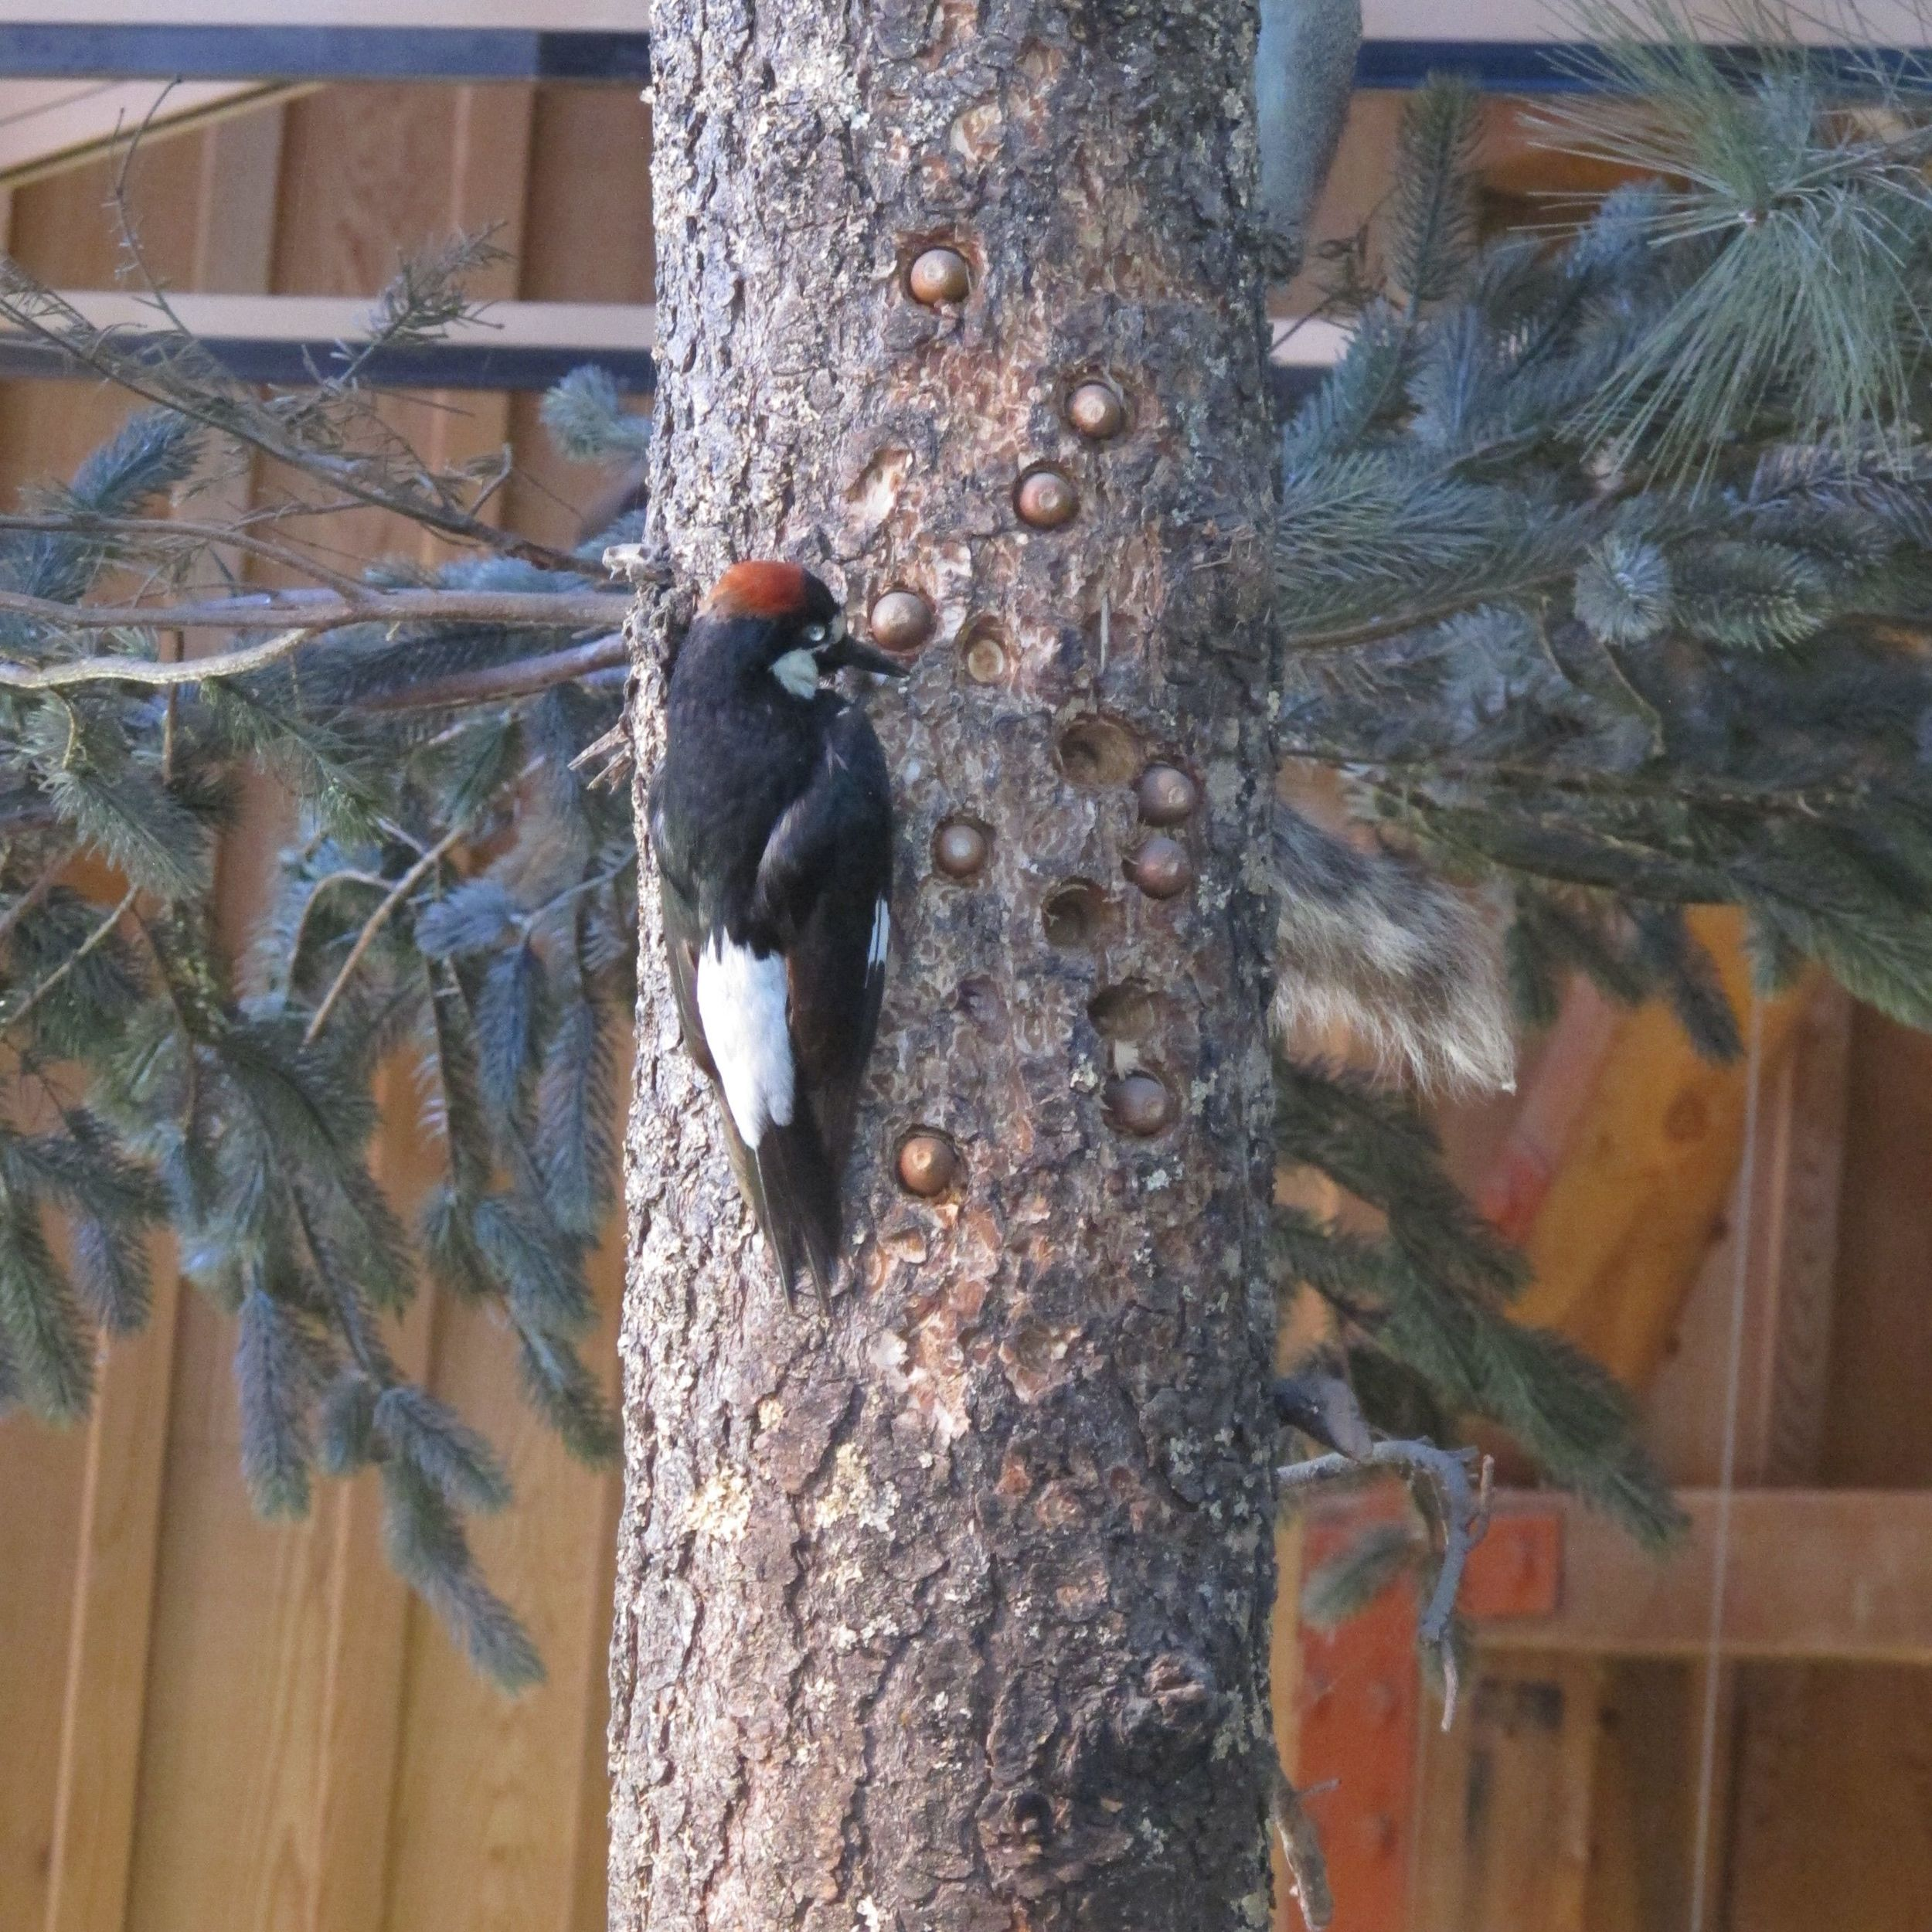 Here's the photo I took of the taxidermied acorn woodpecker at the Point Reyes visitors' center. It's a remarkable sight, but wait until you see the next photo.